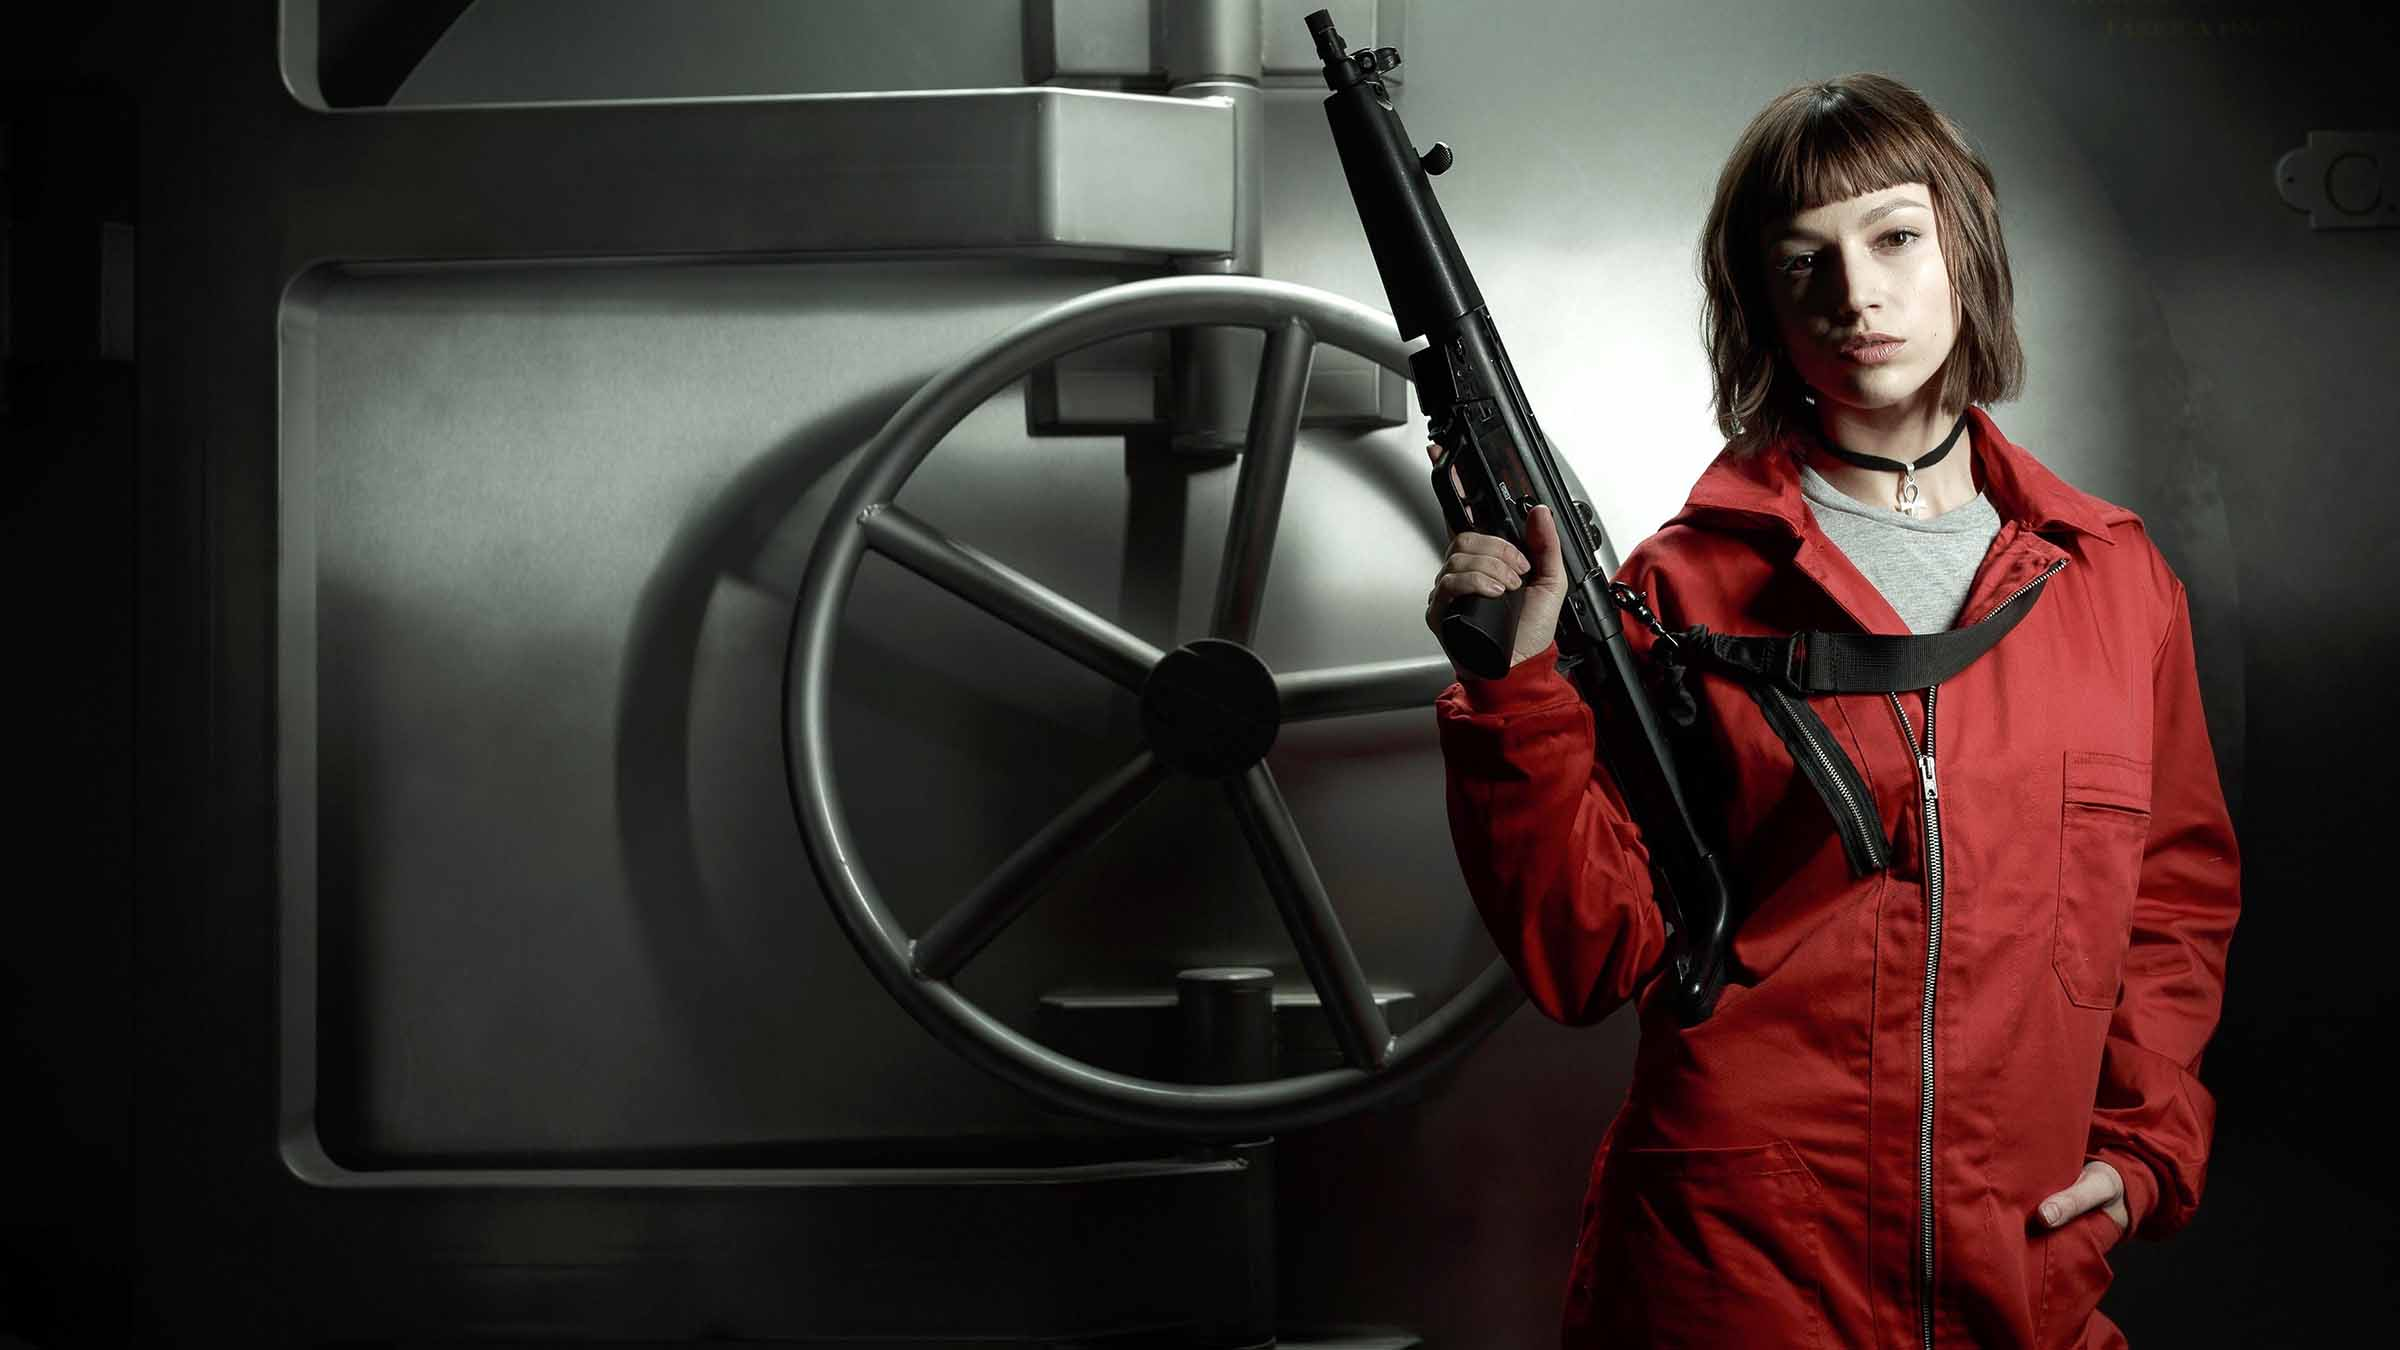 Most annoying 'Money Heist' member? These quotes say Tokyo